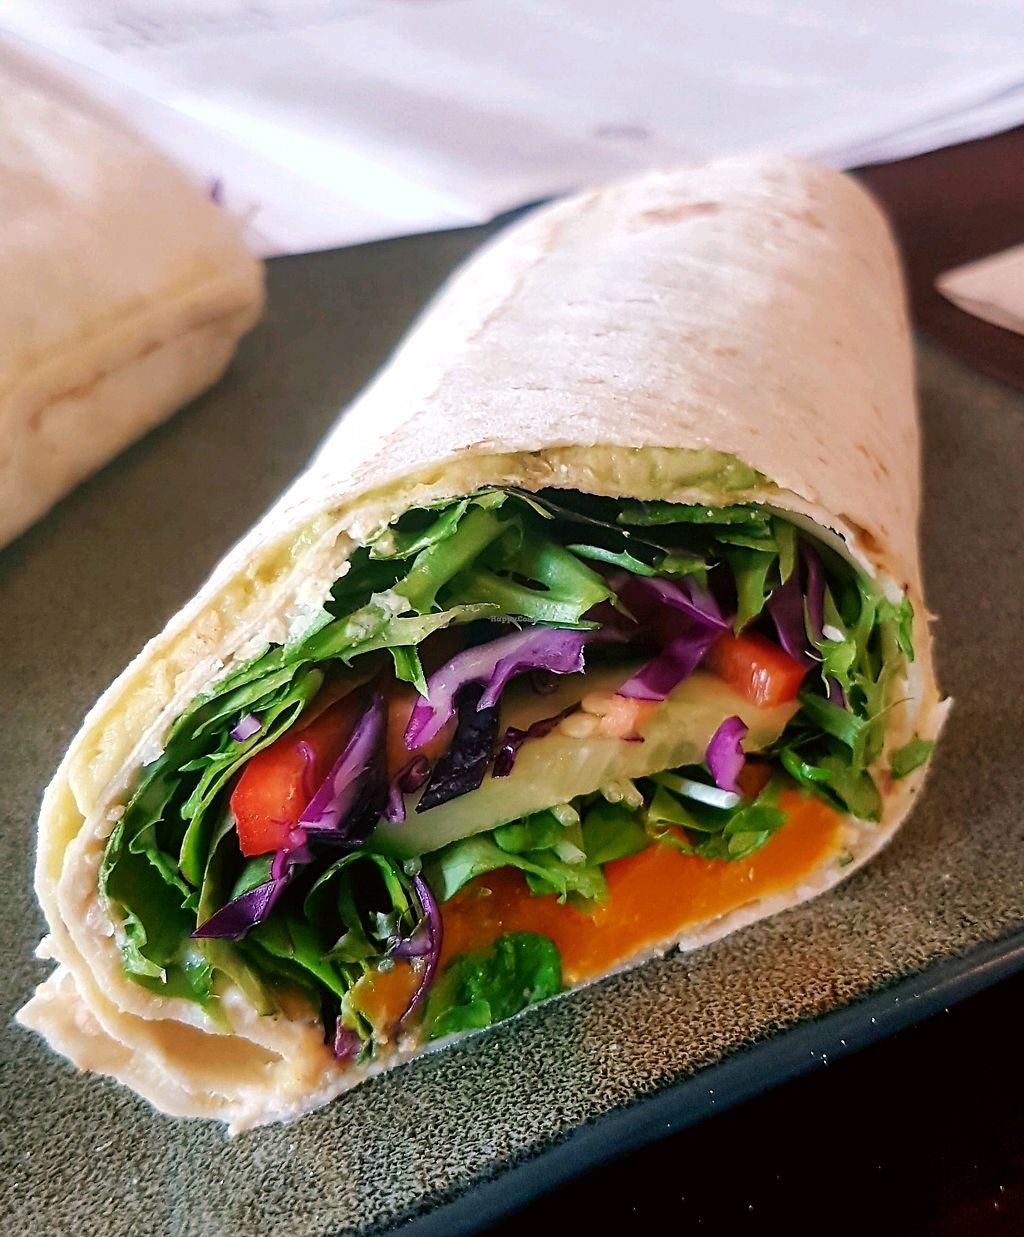 """Photo of SoulPod Foods  by <a href=""""/members/profile/andibrand"""">andibrand</a> <br/>The wrap <br/> March 29, 2018  - <a href='/contact/abuse/image/103284/377584'>Report</a>"""